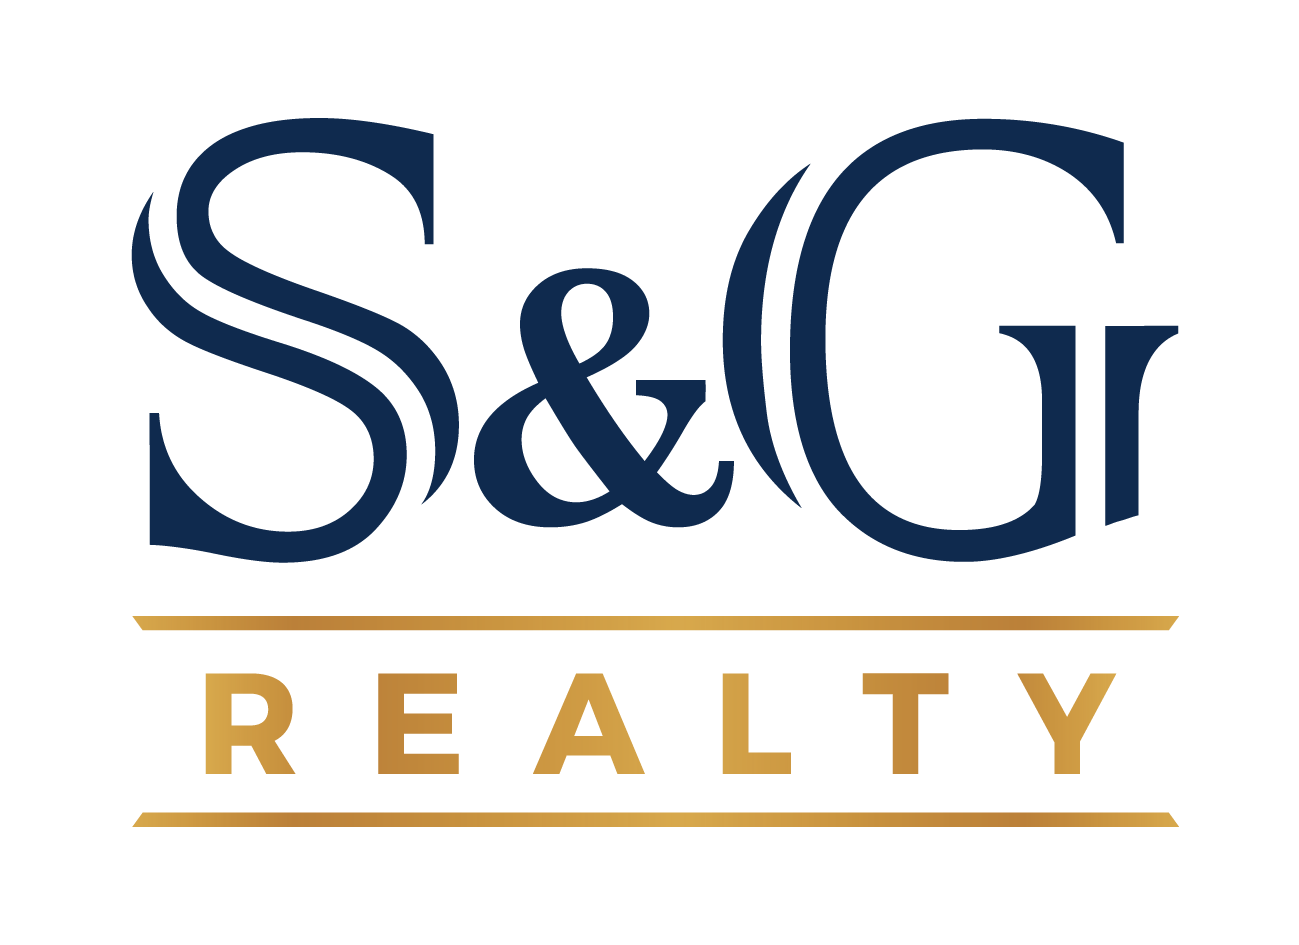 S&G Realty - Blue&Gold - rgb